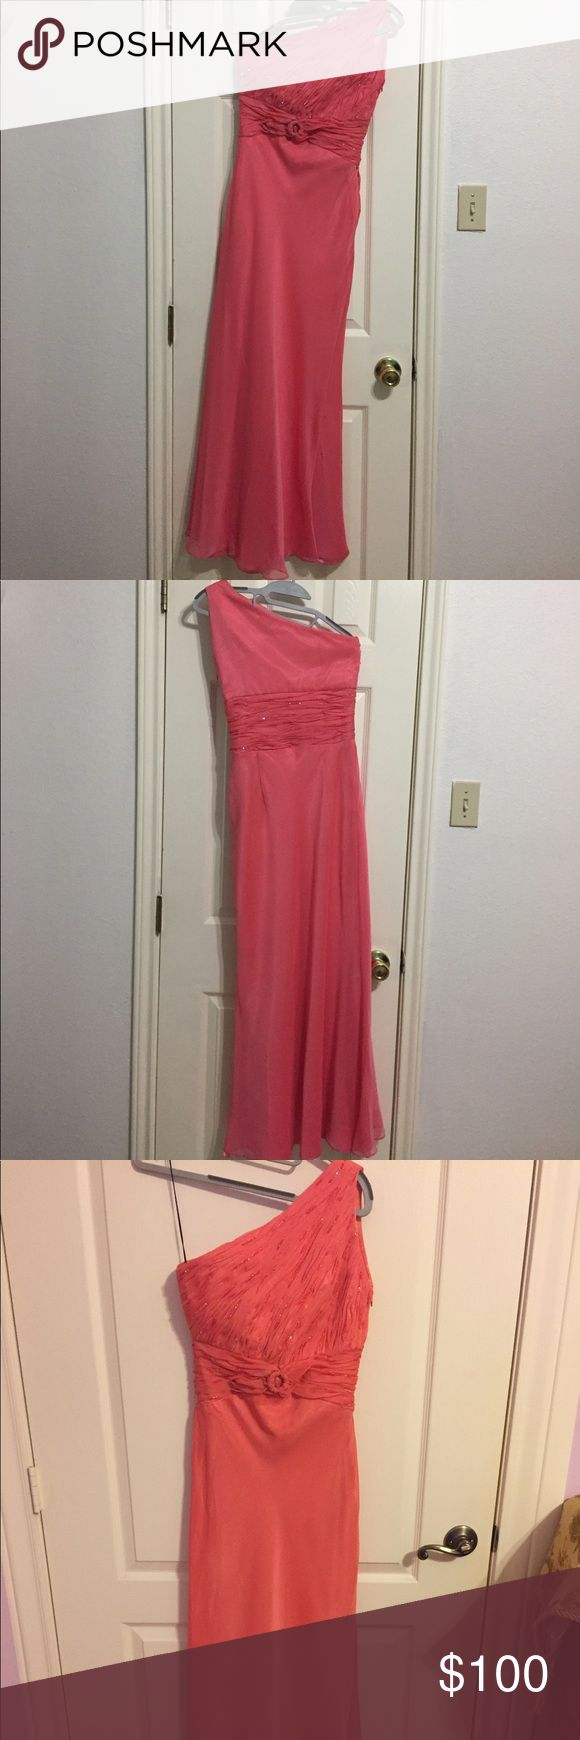 One shoulder coral gown Custom made in the Philippines. Worn once, dry cleaned. No tag since it was custom made. Im petite, size 0, 105 lbs, 5'1 in height. Perfect for prom, wedding, gala, formal event! Dresses Prom